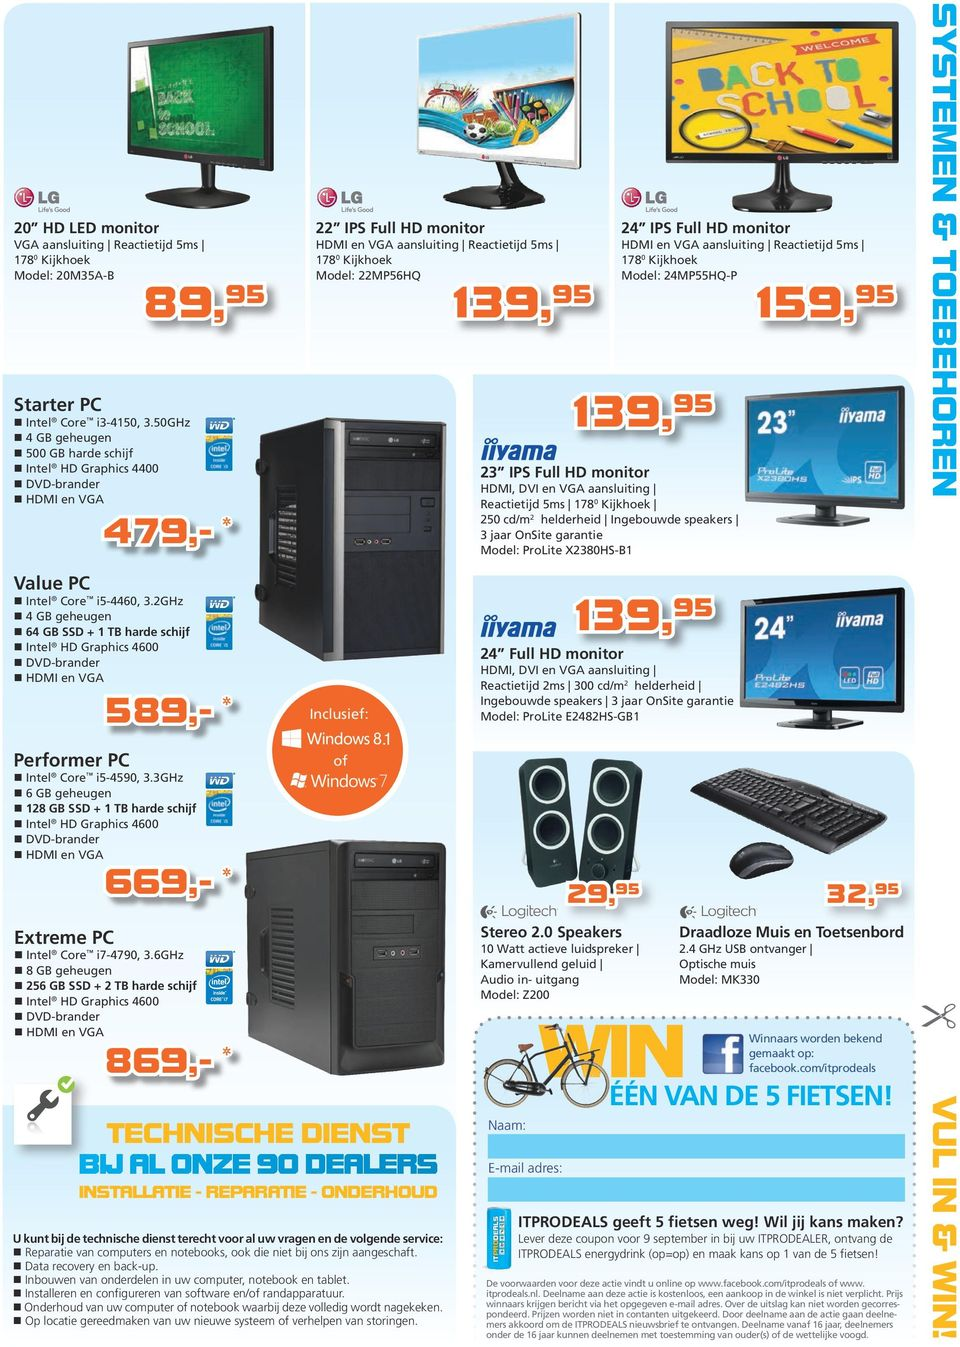 50GHz 4 GB geheugen 500 GB harde schijf Intel HD Graphics 4400 DVD-brander HDMI en VGA 23 IPS Full HD monitor HDMI, DVI en VGA aansluiting Reactietijd 5ms 1780 Kijkhoek 250 cd/m2 helderheid